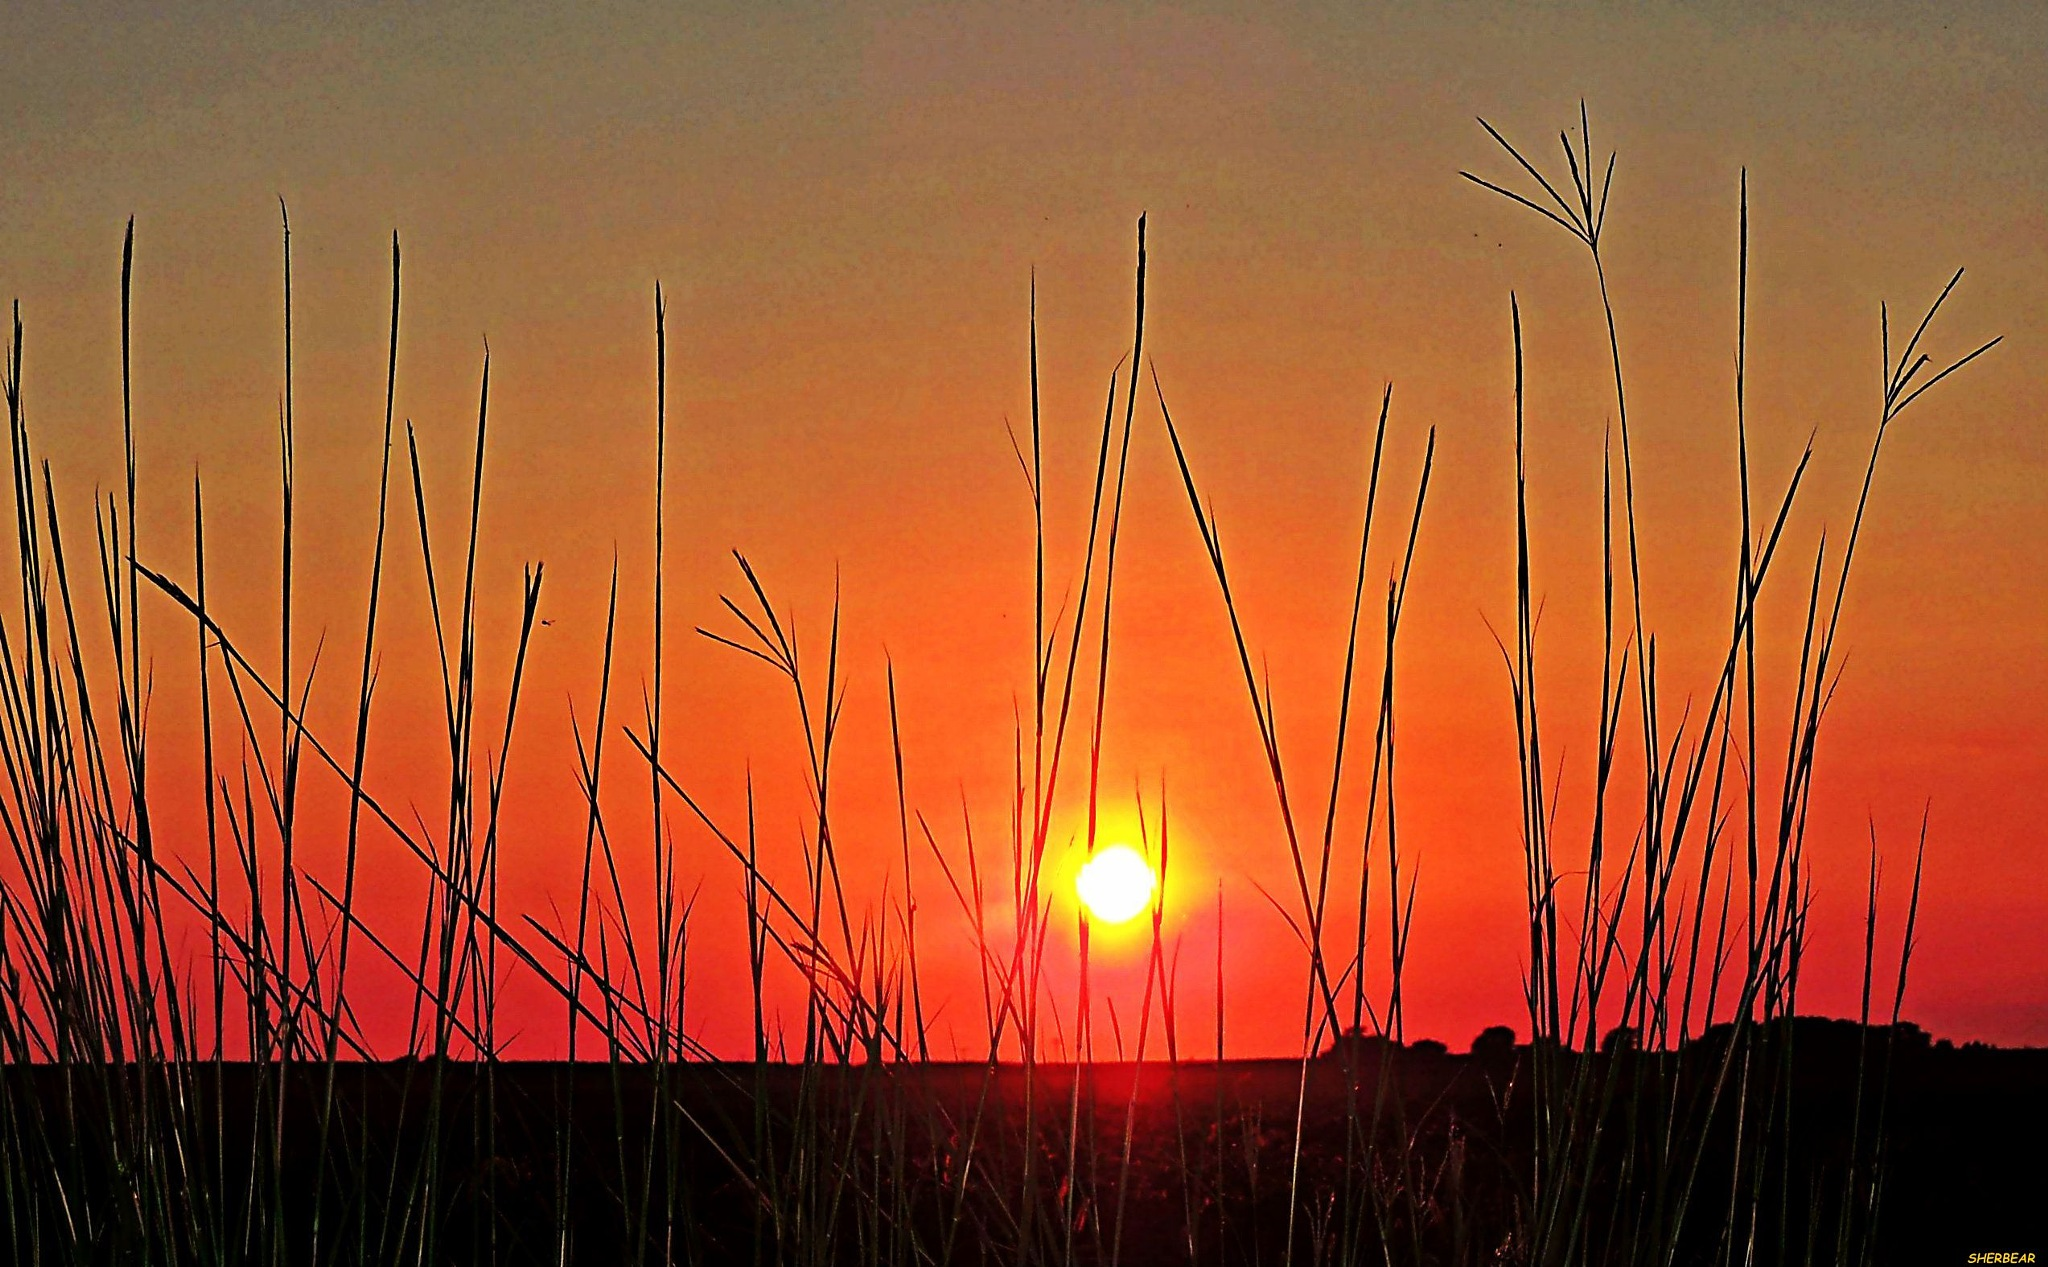 MCLEAN COUNTY SUNSET by sherilyn.malmbergsanford